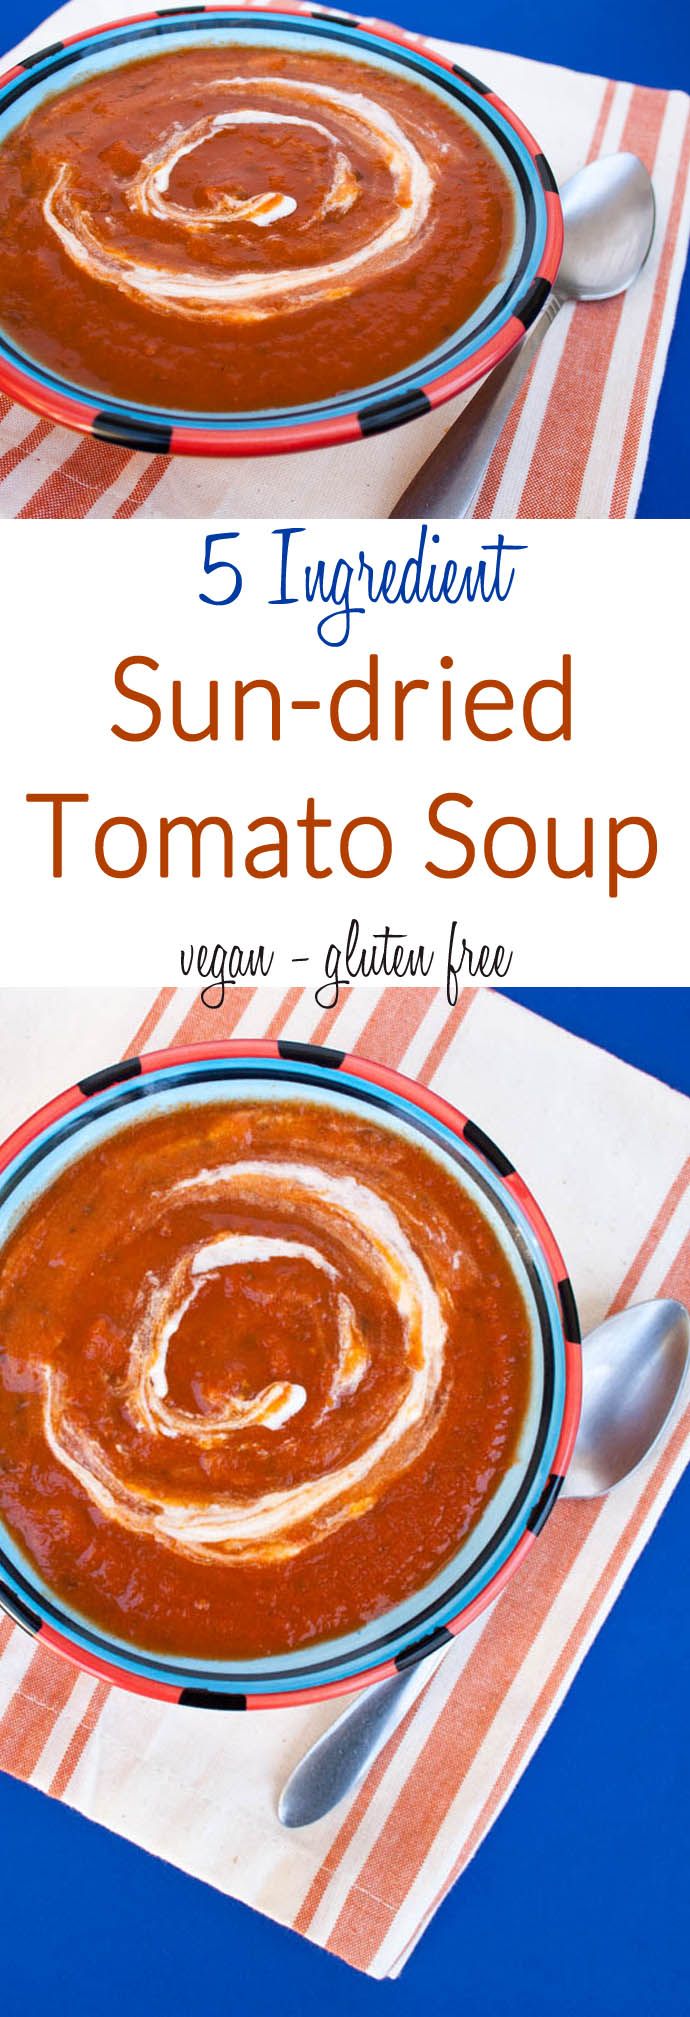 5 Ingredient Sun-dried Tomato Soup collage photo with text in the middle.